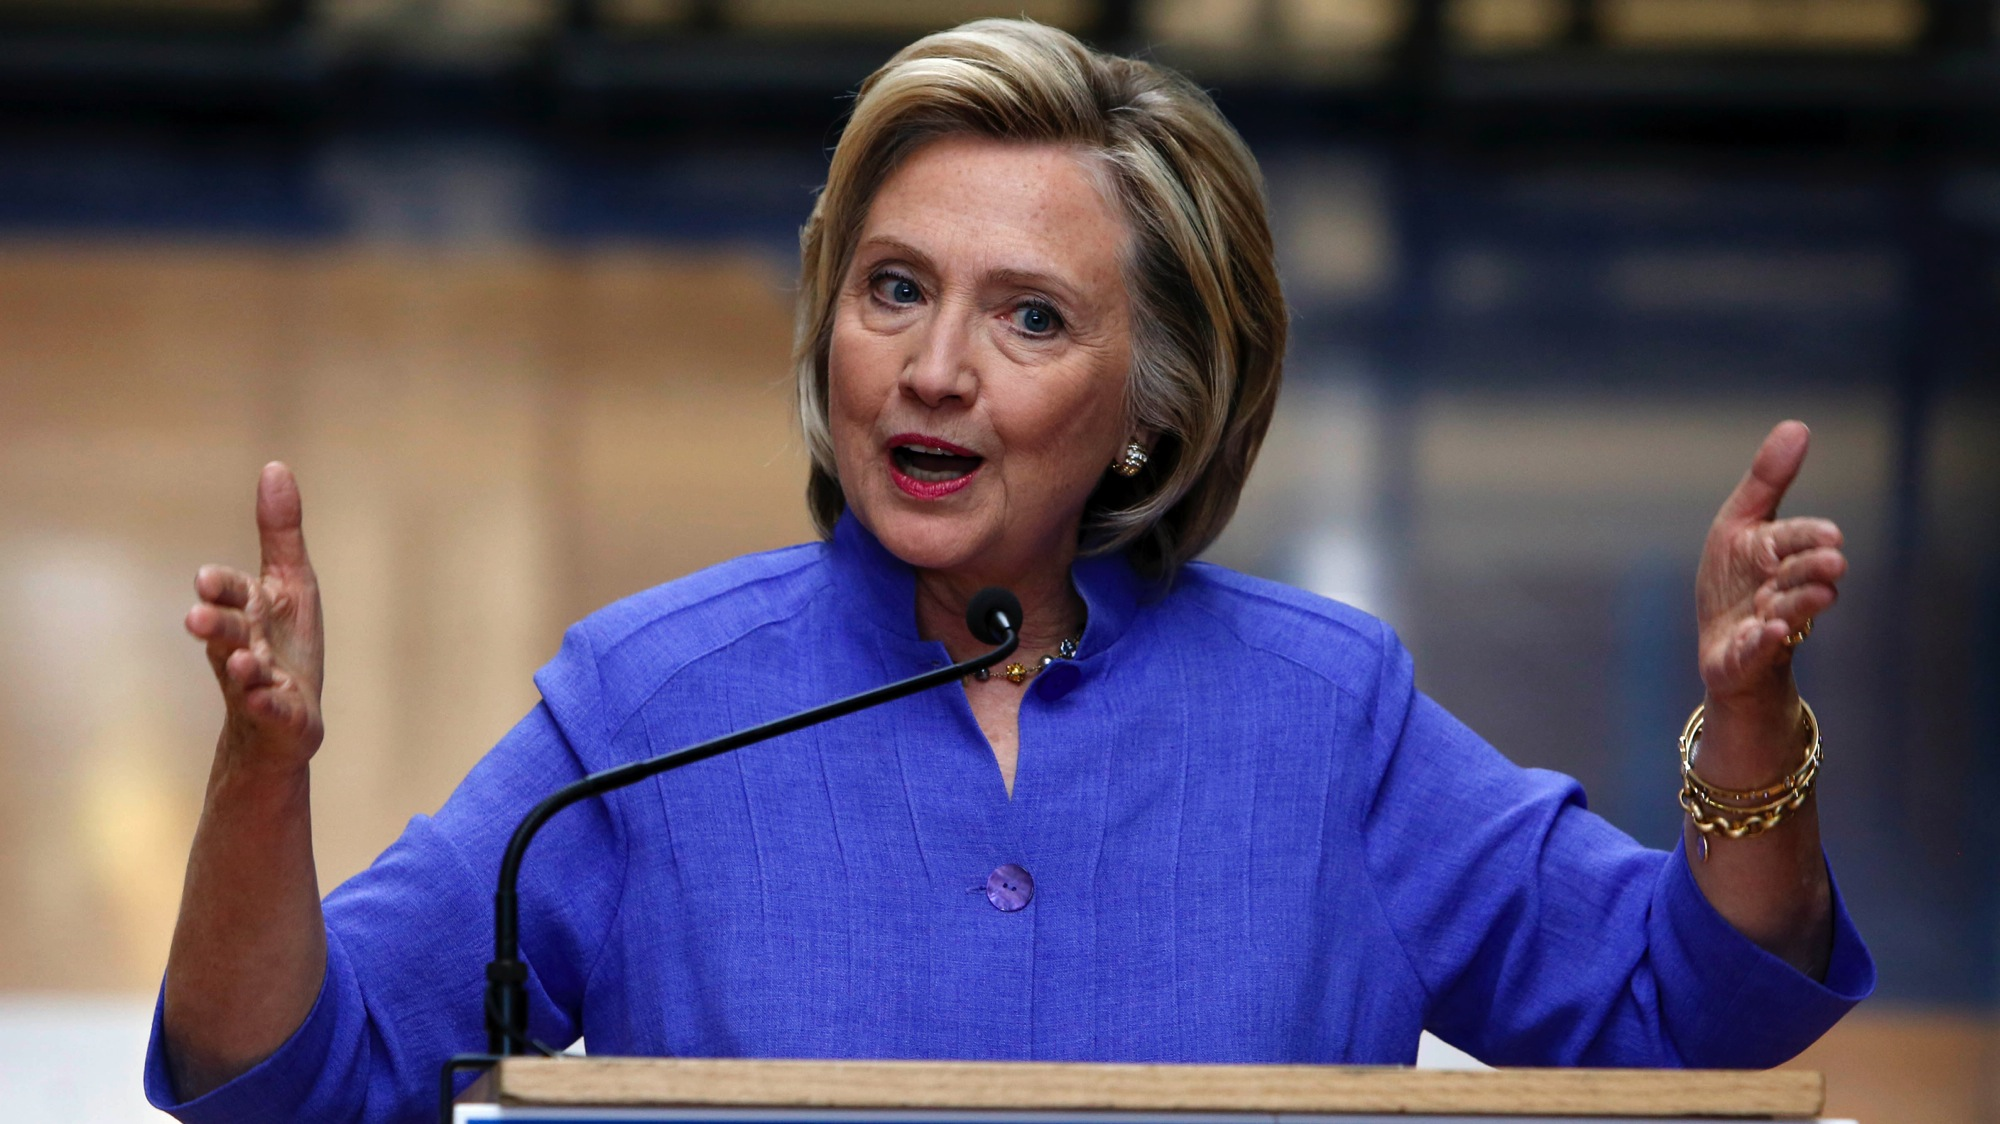 Democratic presidential candidate Hillary Rodham Clinton answers reporters questions about Republican presidential candidate Donald Trump after announcing her college affordability plan, Monday, Aug. 10, 2015, at the high school in Exeter, N.H. (AP Photo/Jim Cole)